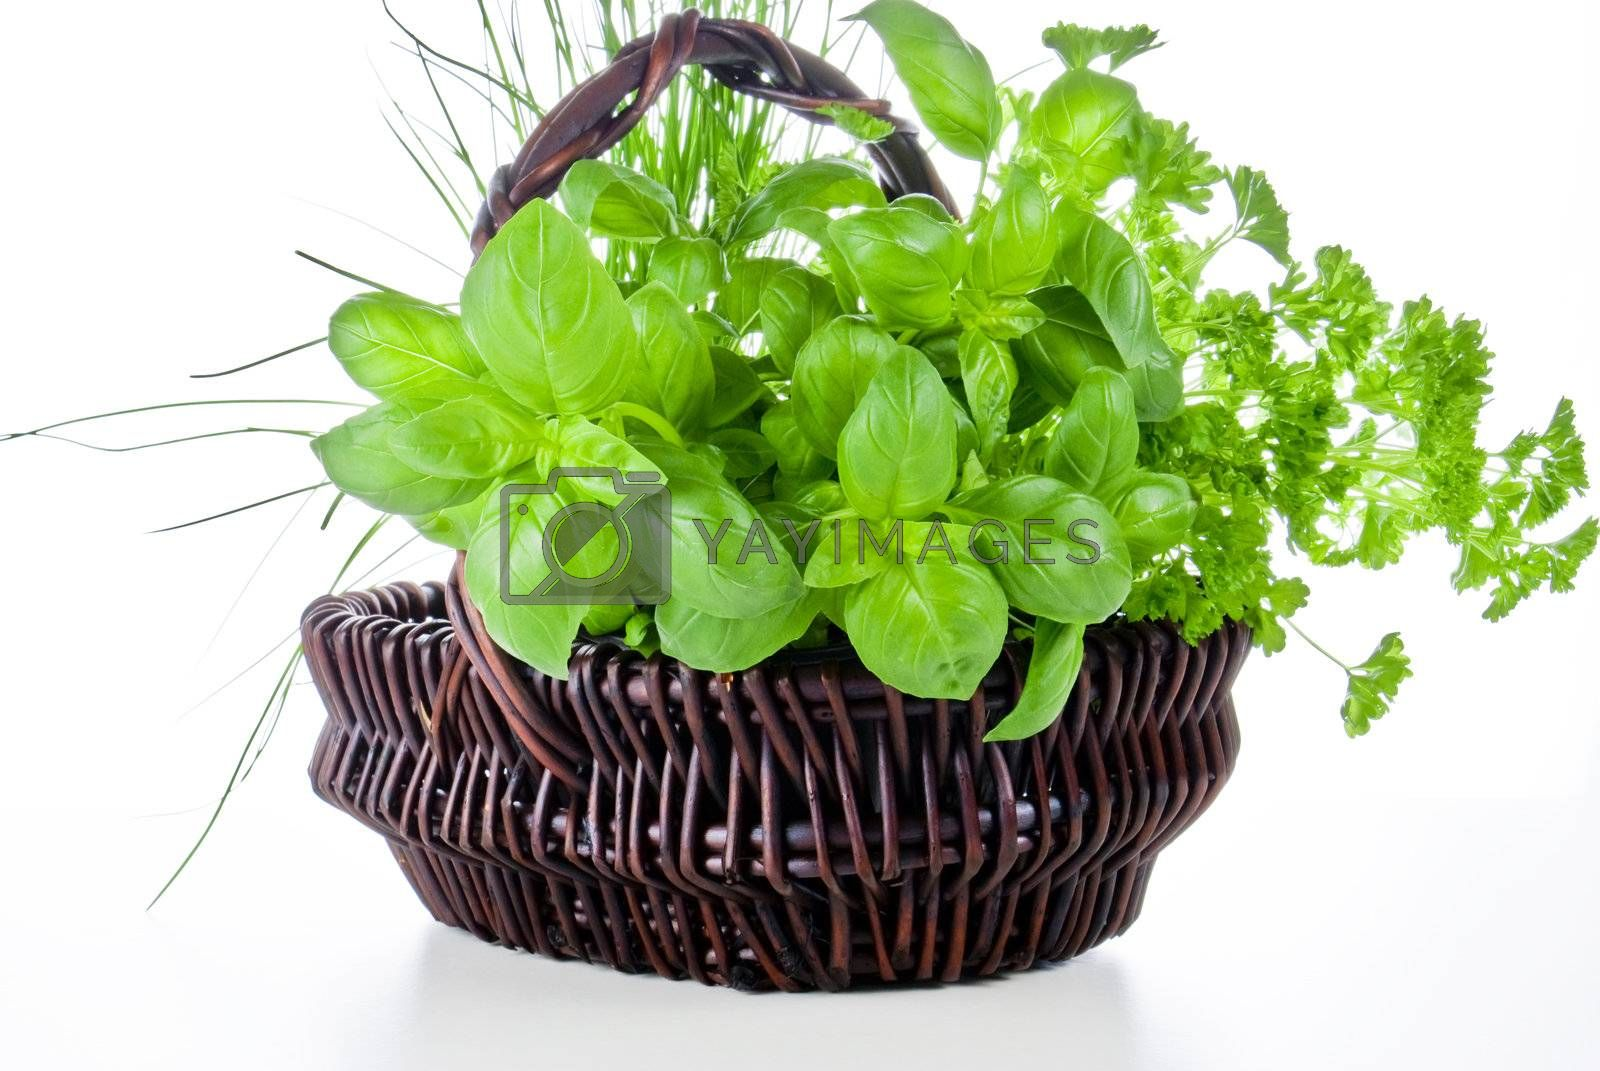 Basket of herbs by caldix